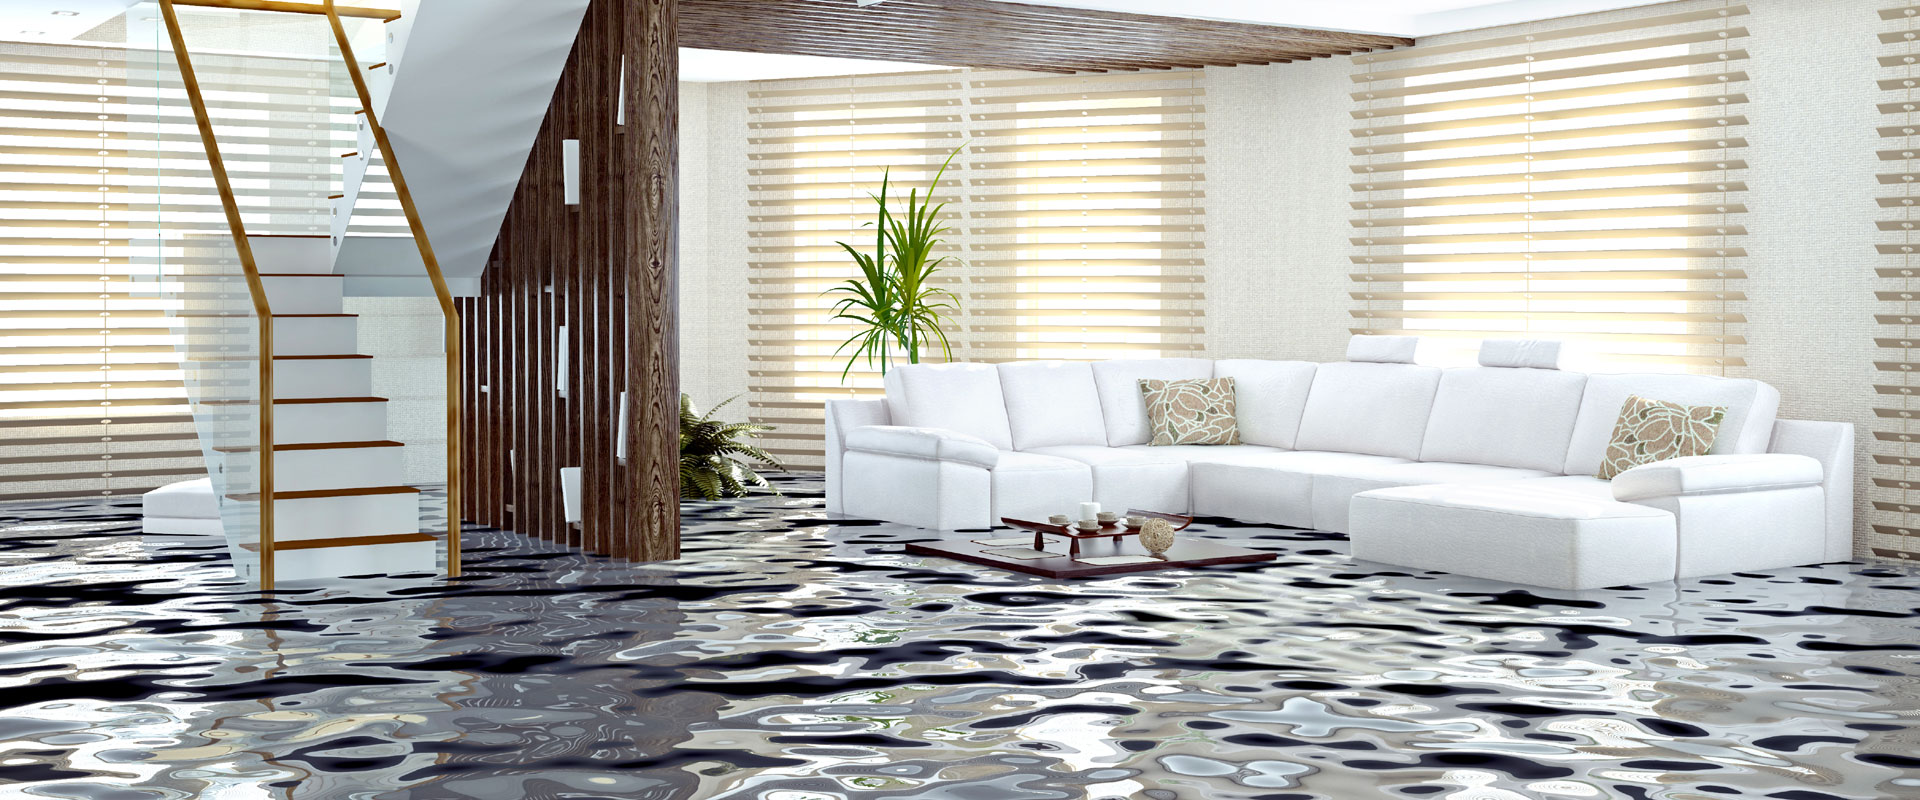 Keep Your House Clean and Spotless With Water Damage Services in North Fort Myers